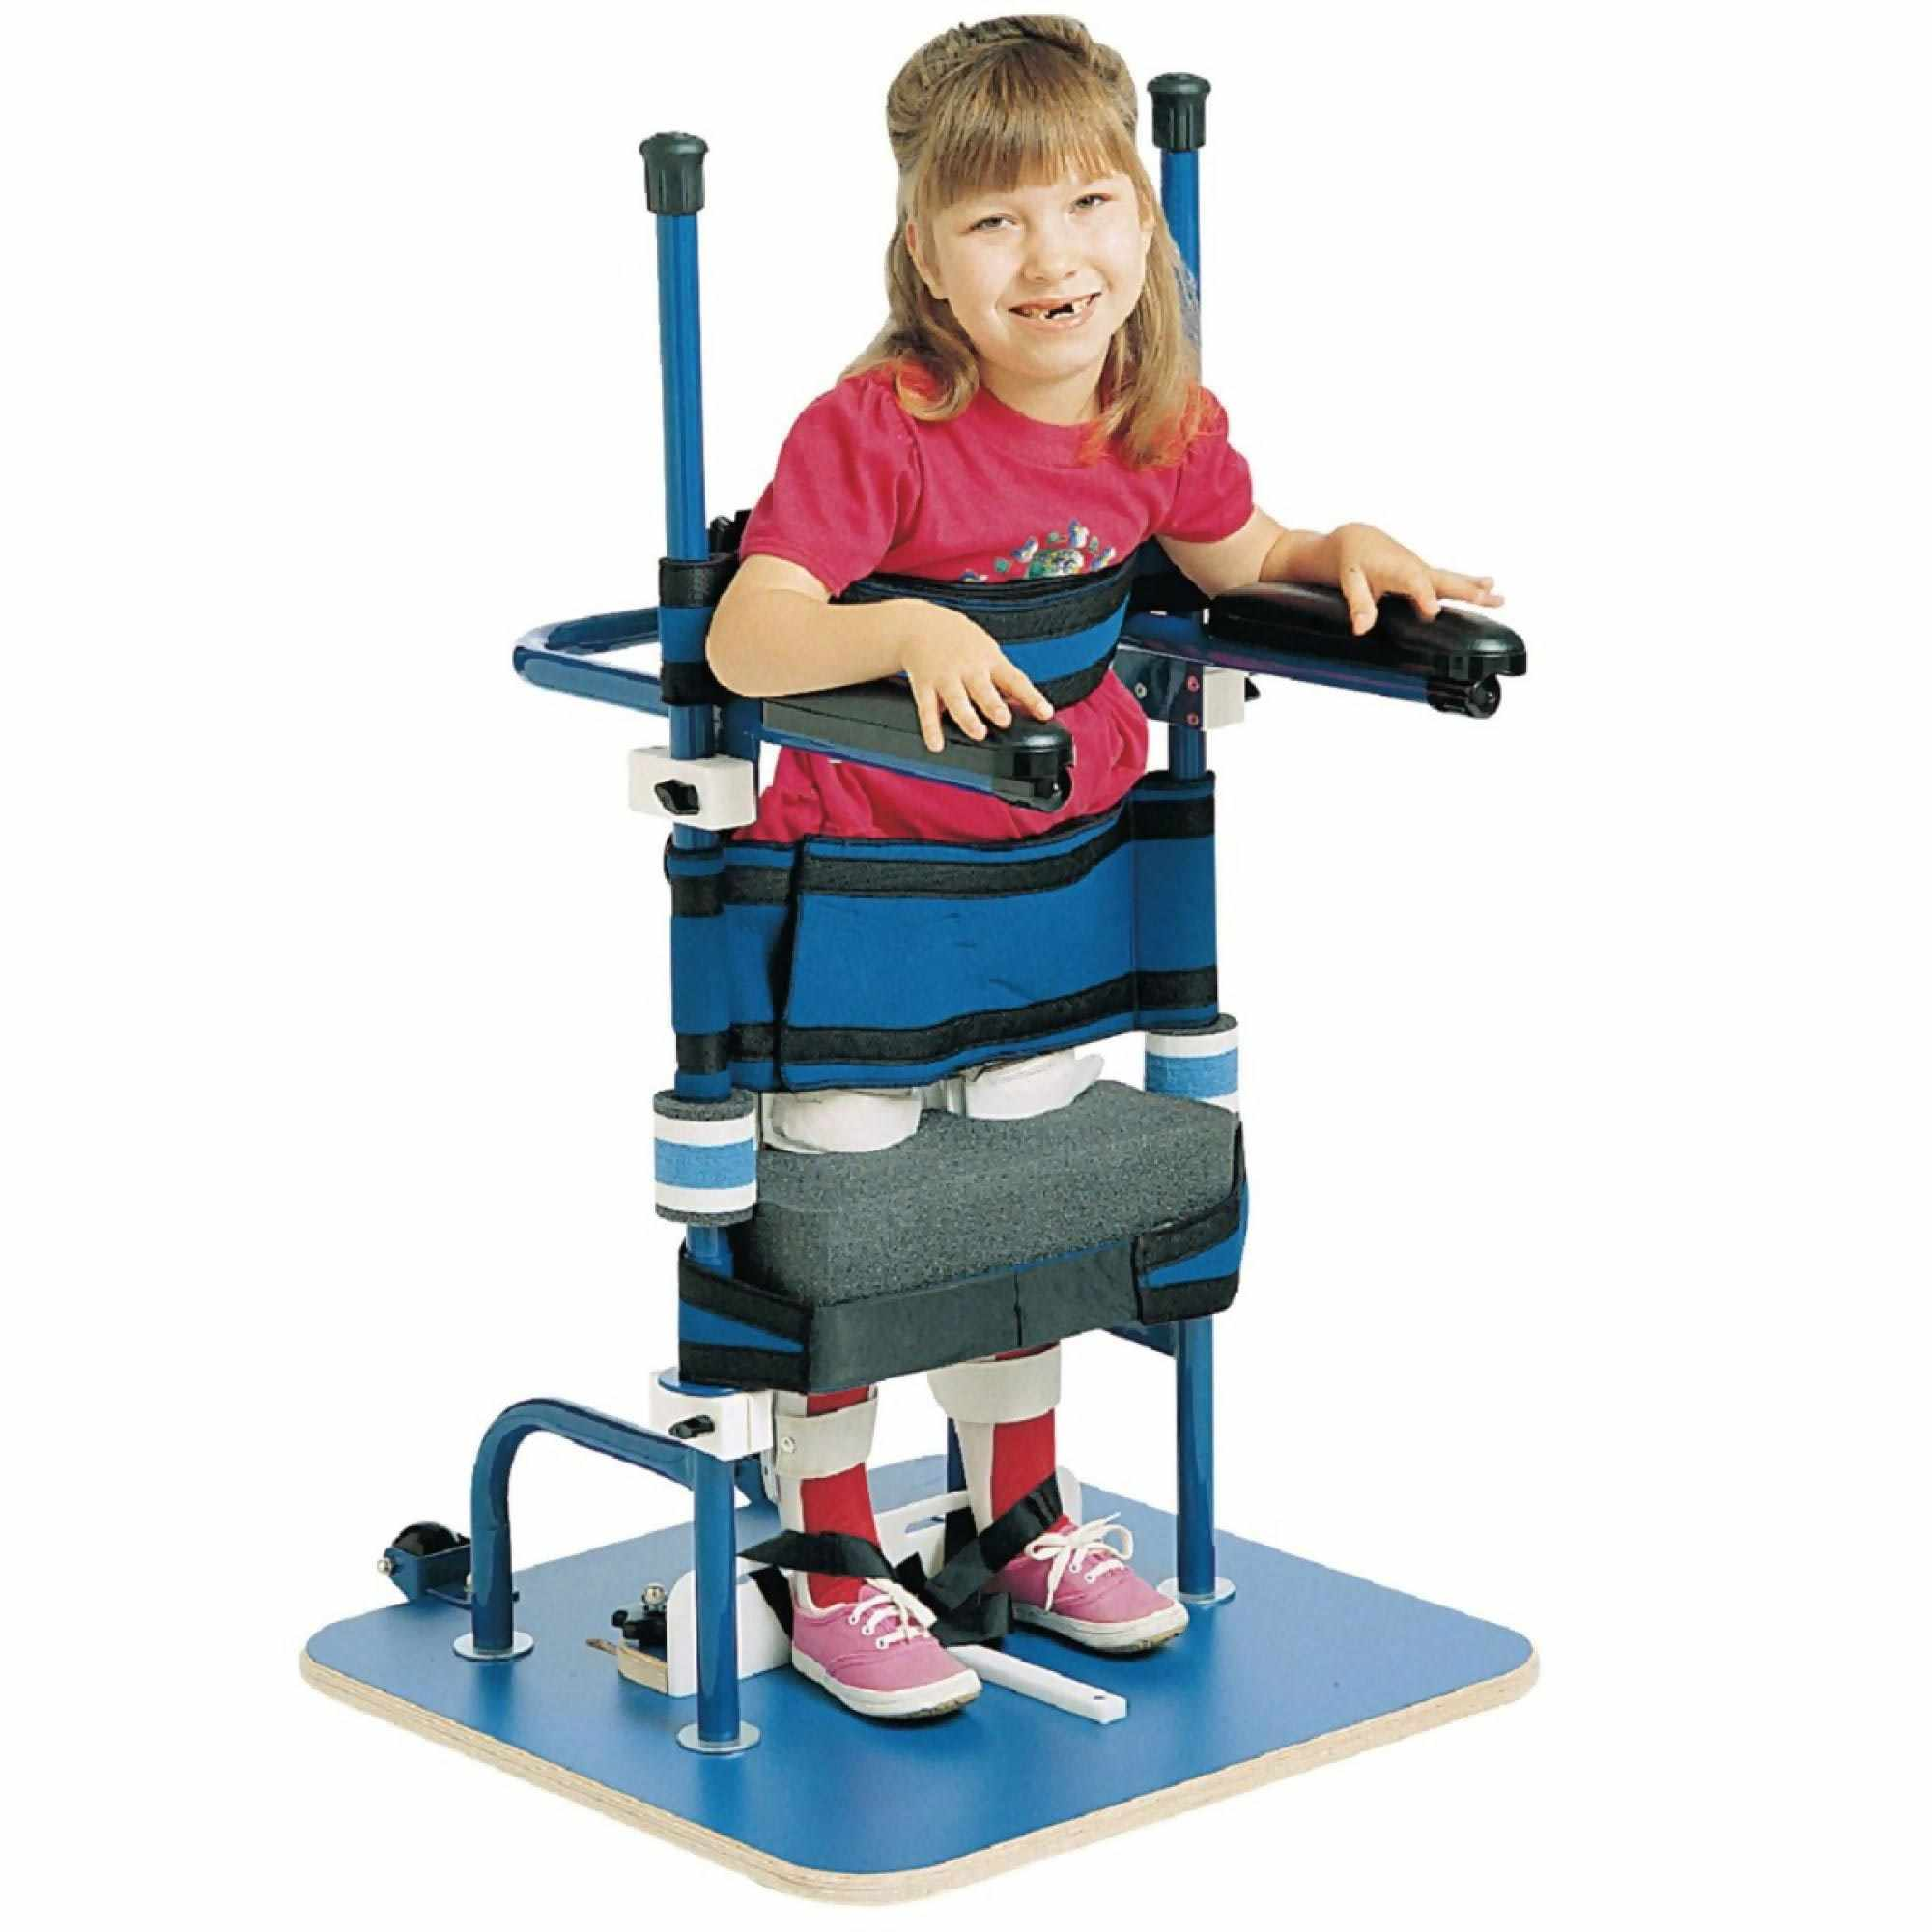 Tumble Forms Little Hugs Vertical Stander